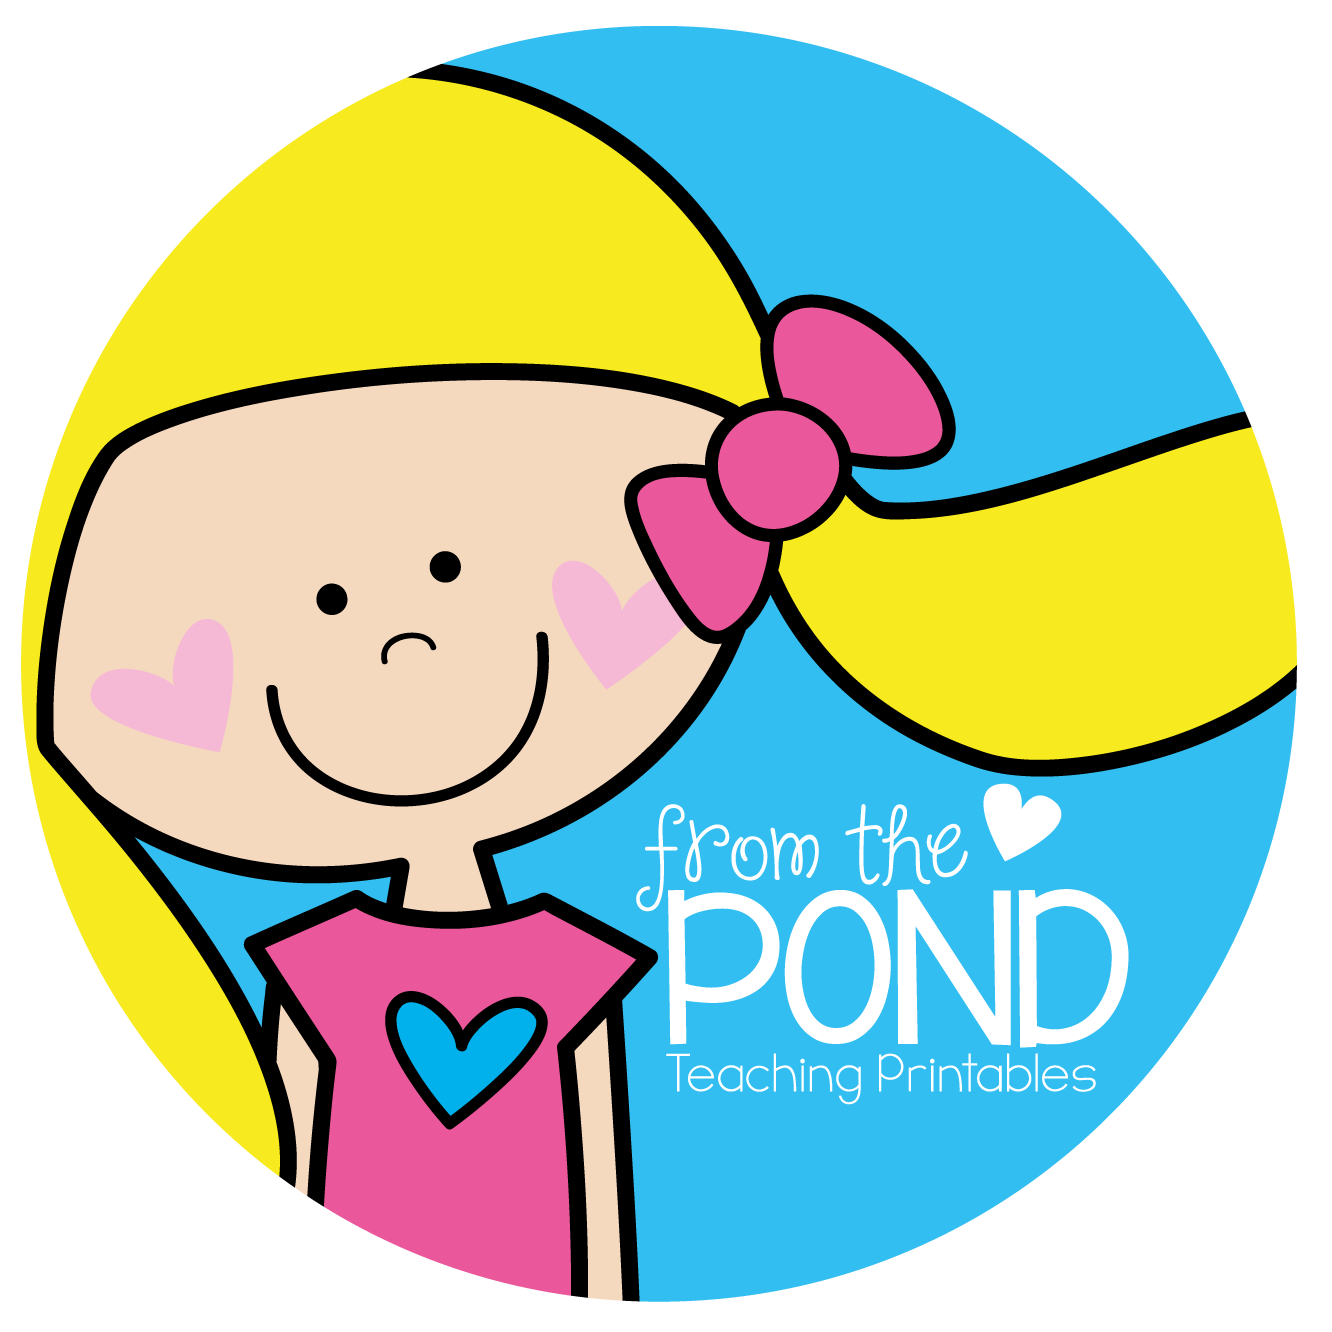 From the pond get. Playdough clipart my cute graphic